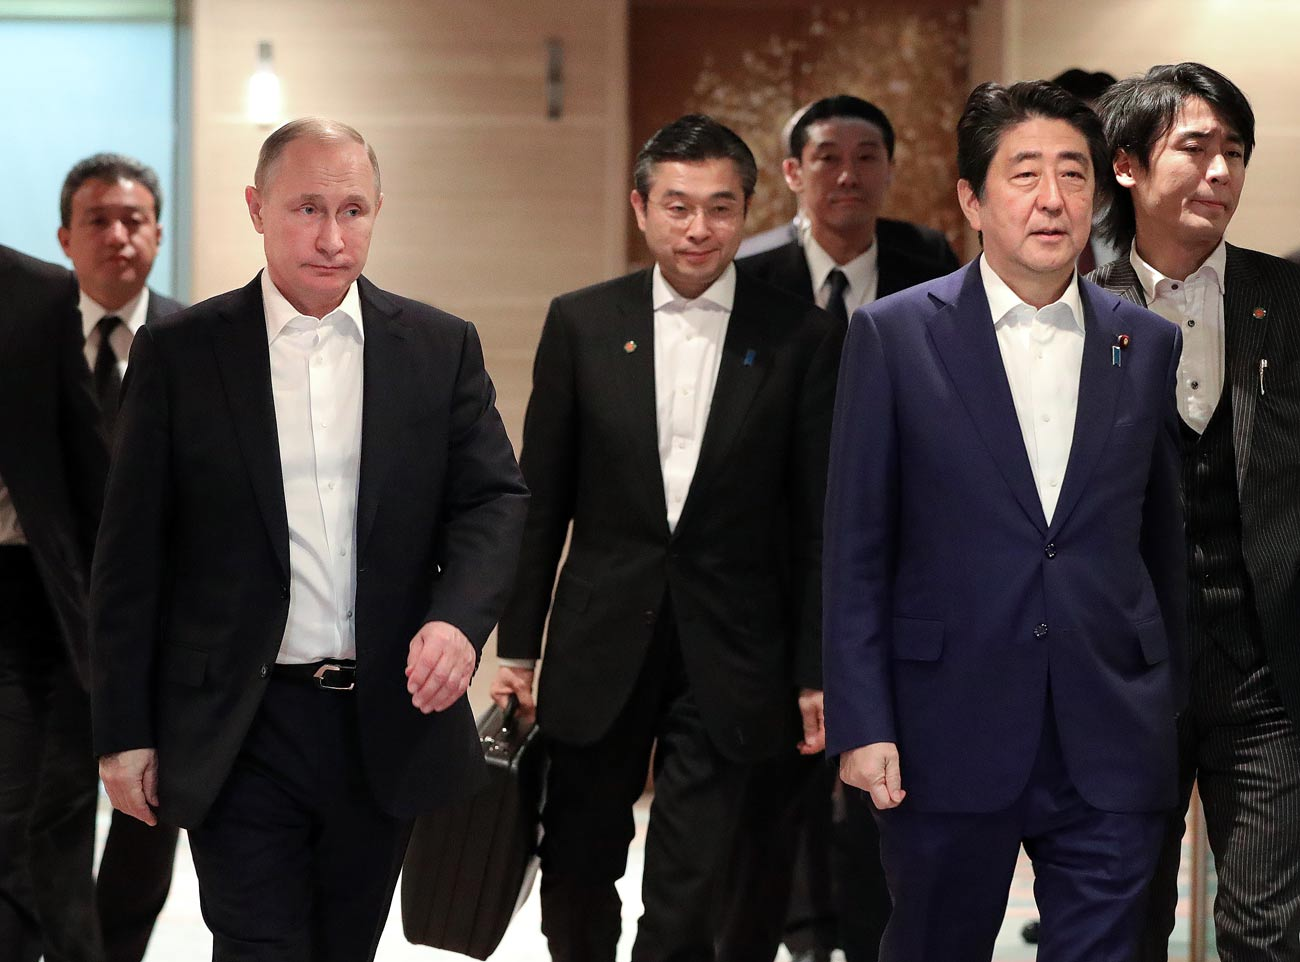 Russian President Vladimir Putin and Japanese Prime Minister Shinzo Abe, front, right, durong a meeting in Nagato, Yamaguchi Prefecture